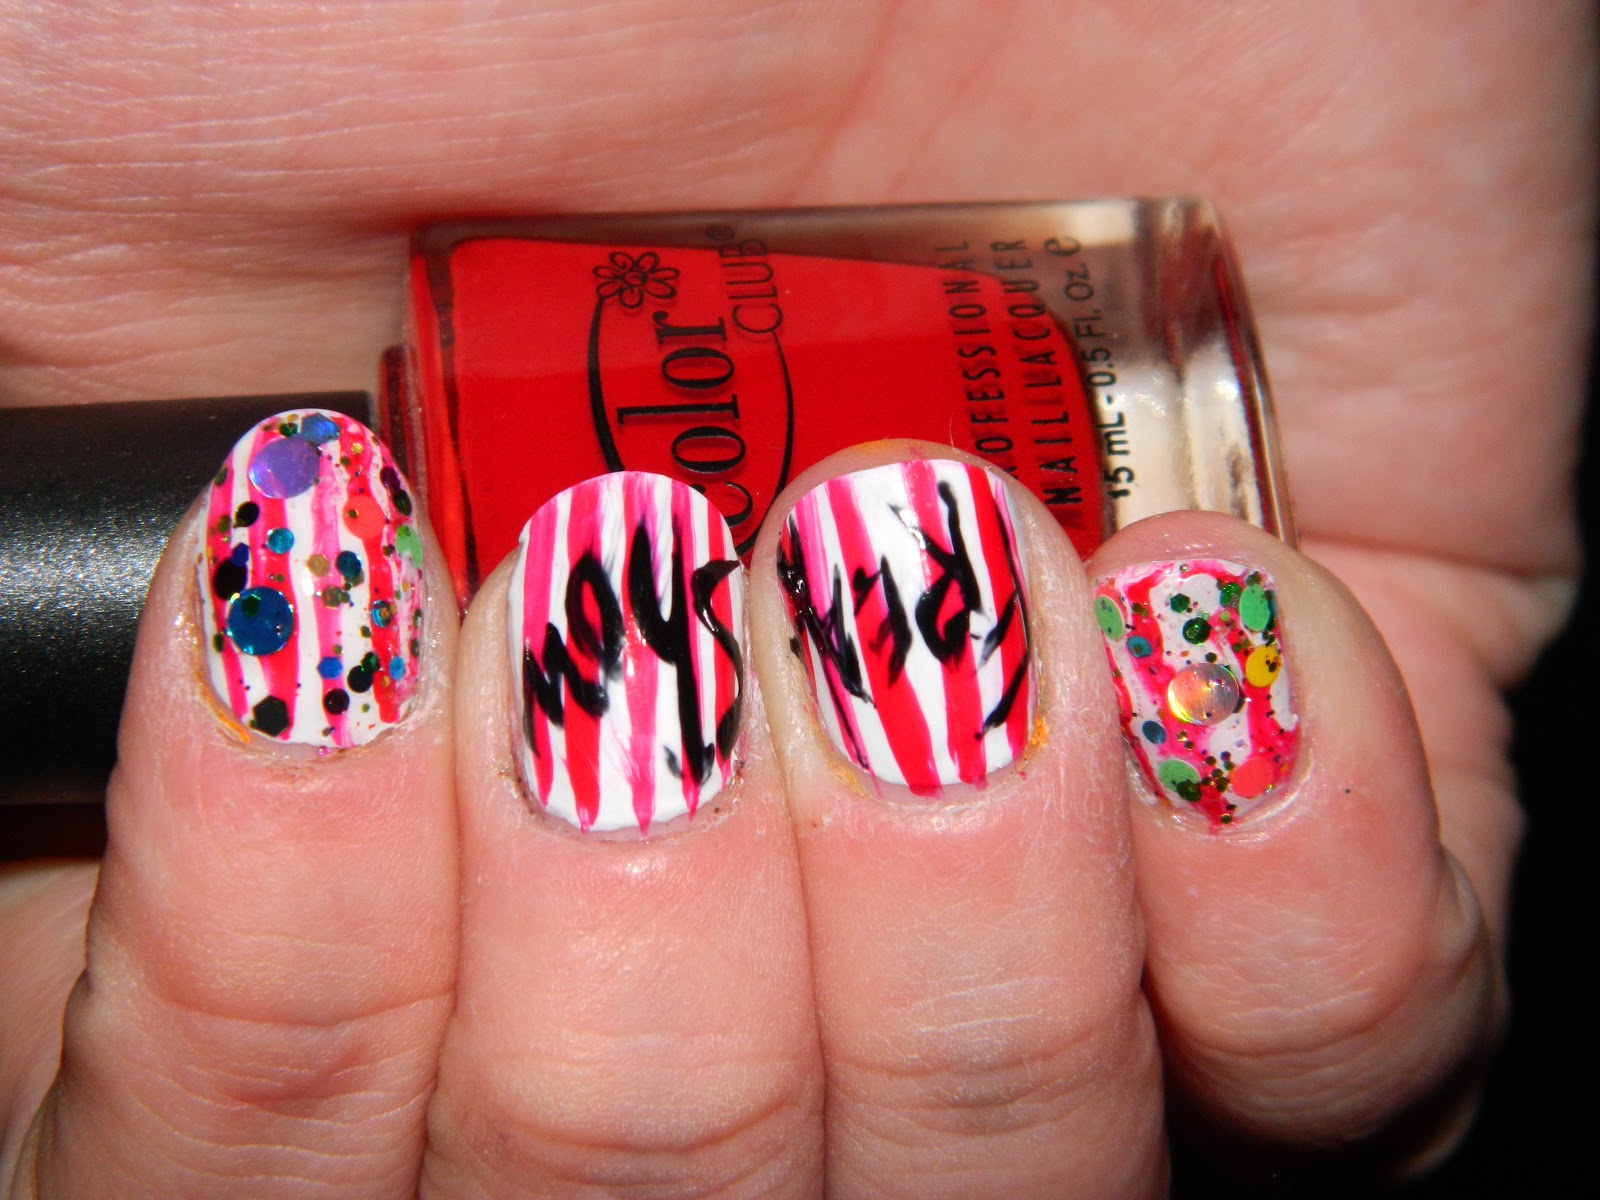 Cutting edge polish freak show nail art this nail art was inspired by the show american horror story freak show prinsesfo Image collections